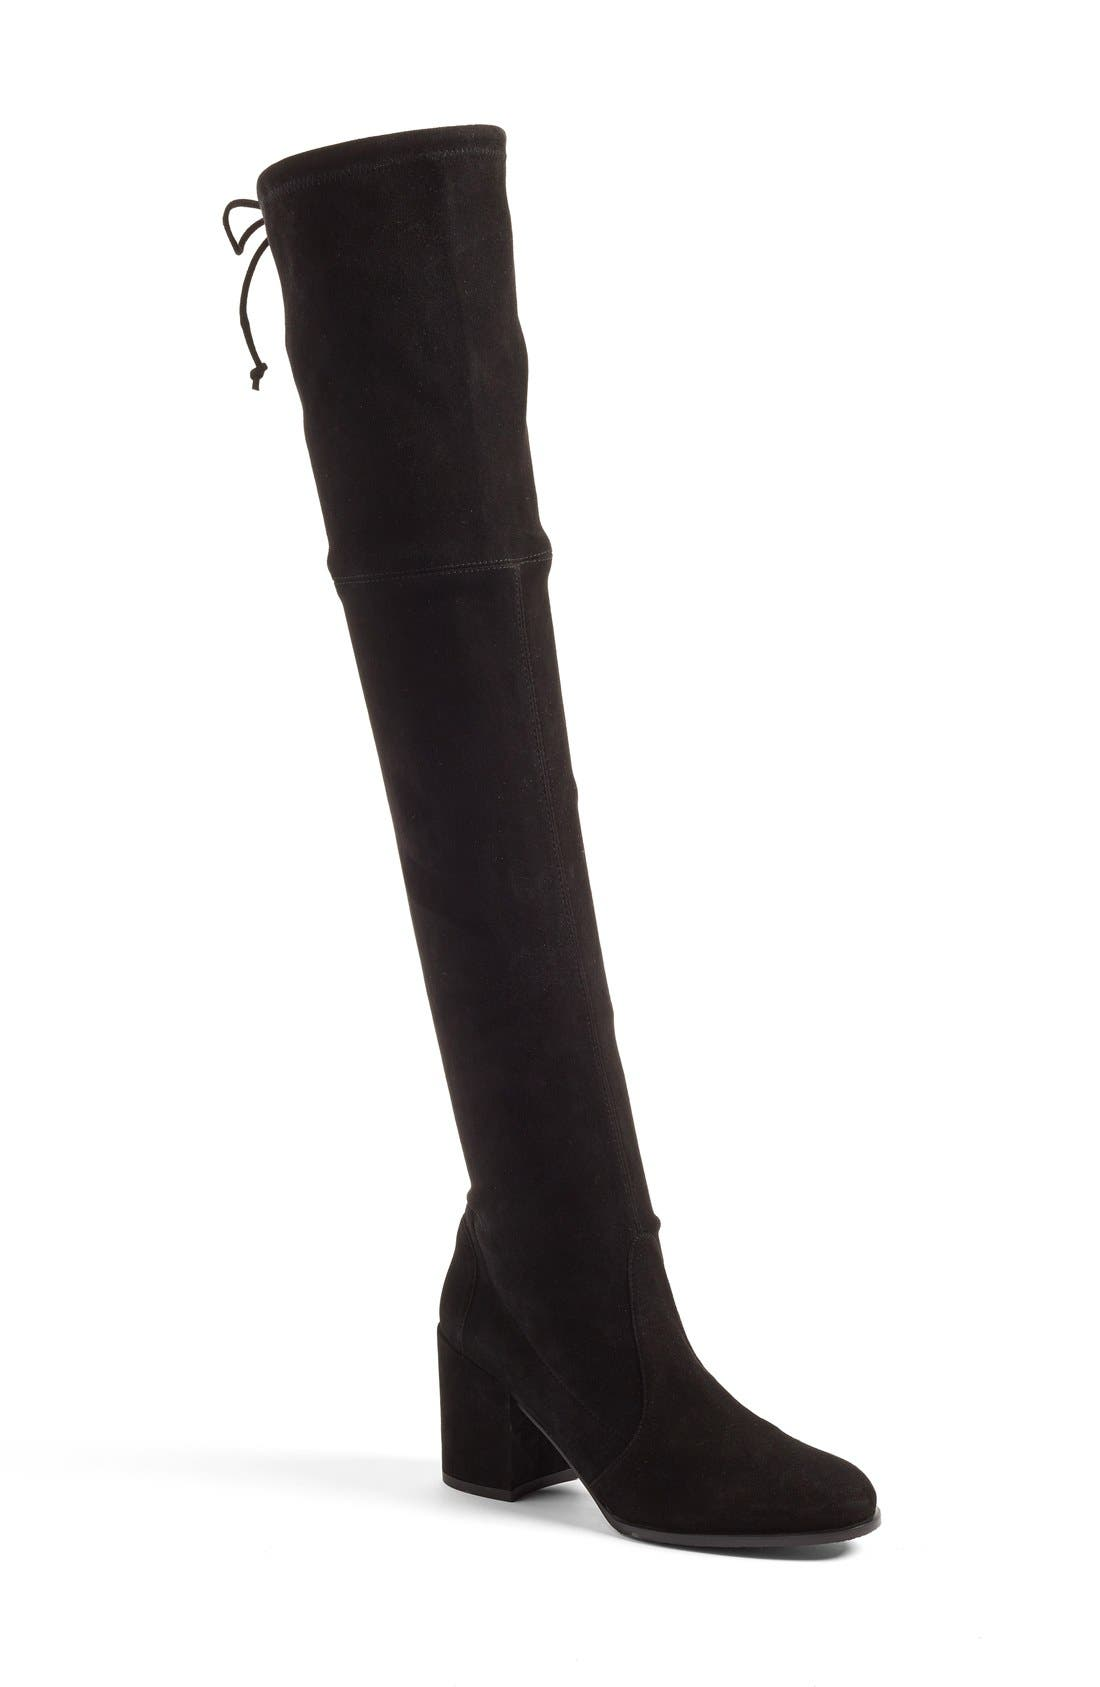 Tieland Over the Knee Boot,                             Main thumbnail 3, color,